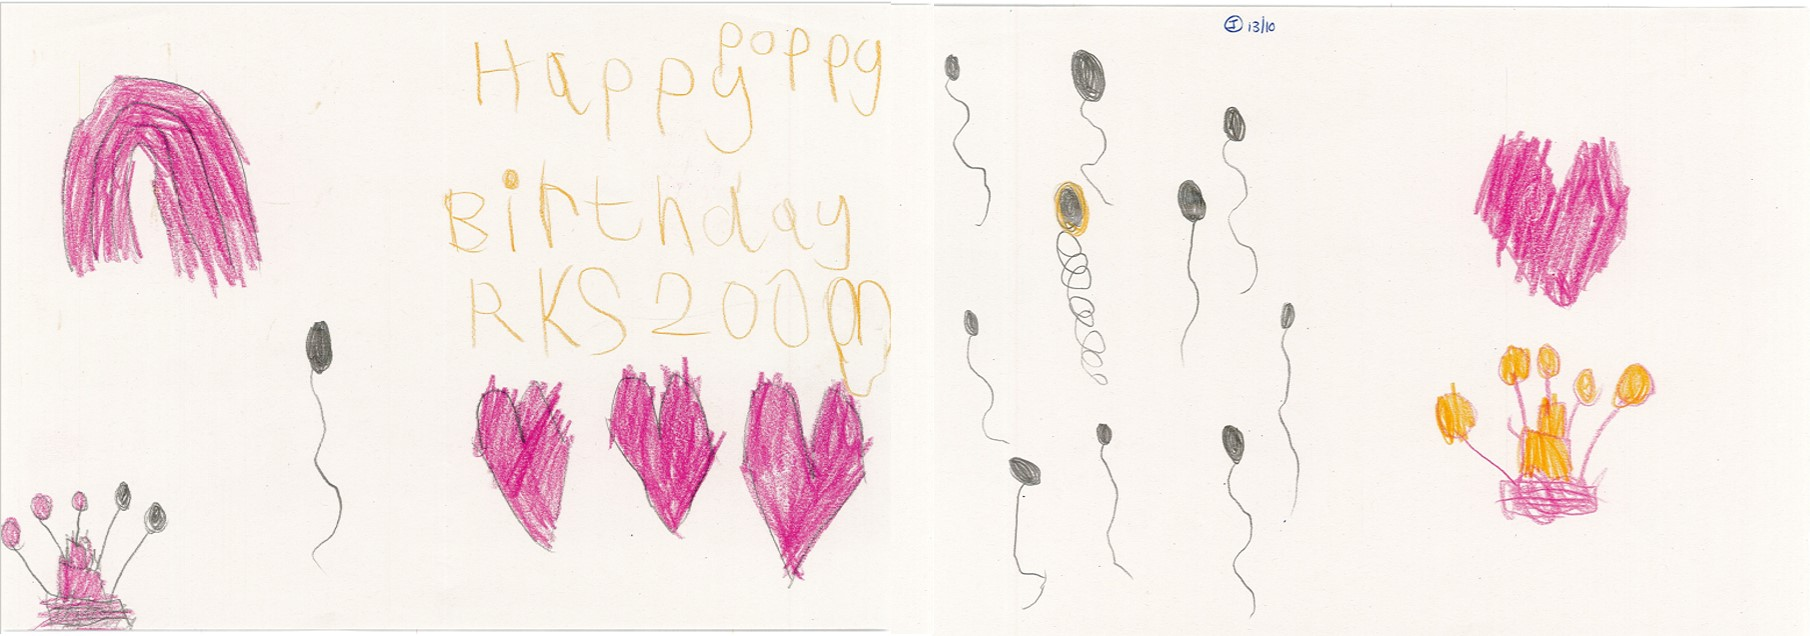 Poppy has used pink and yellow crayons to create a drawing wishing Royal Kent School a happy 200th birthday. She has decorated her message with drawings of hearts, balloons and birthday cakes.